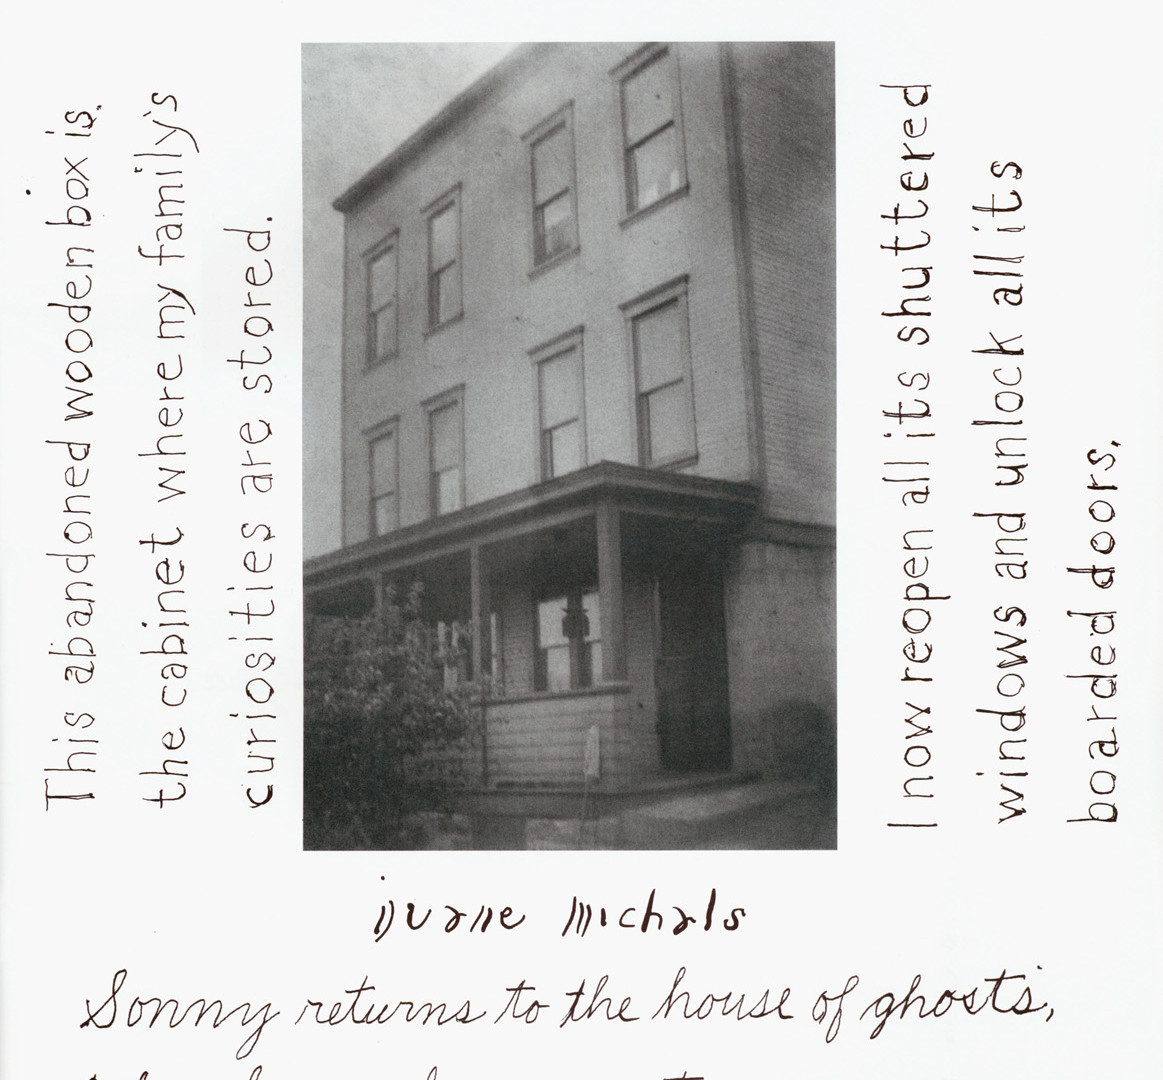 Duane Michals, detail from The House I Once Called Home, 2002